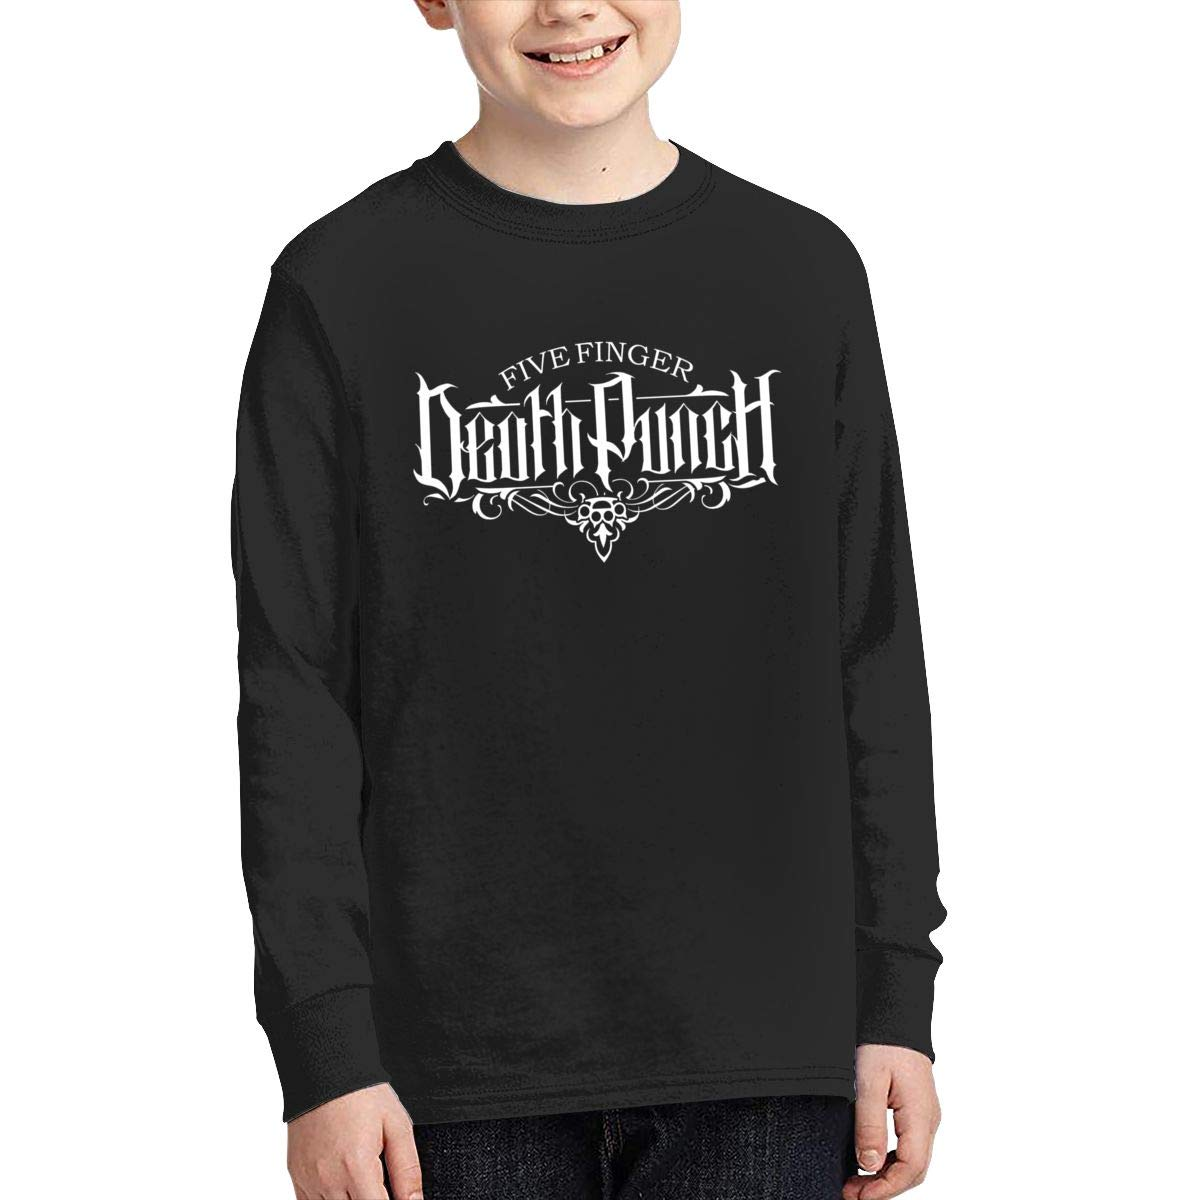 MichaelHazzard Five Finger Death Punch Logo Youth Soft Long Sleeve Crewneck Tee T-Shirt for Boys and Girls